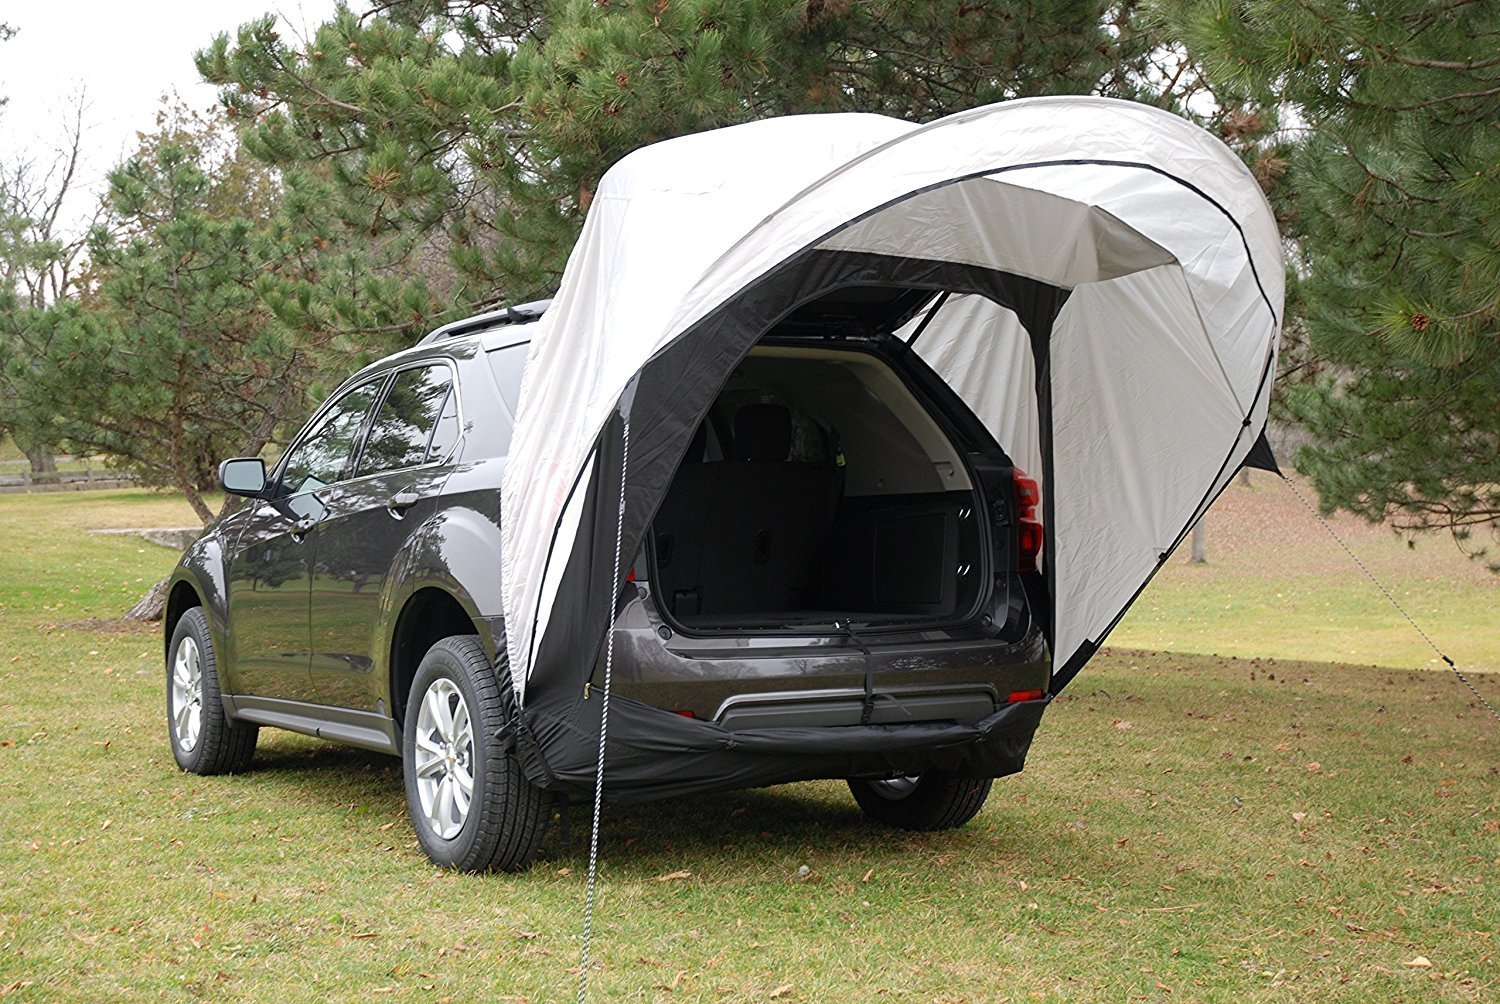 New Napier Sportz Cove 61500 Suv Minivan Tent With Built In Storm Flap Ebay